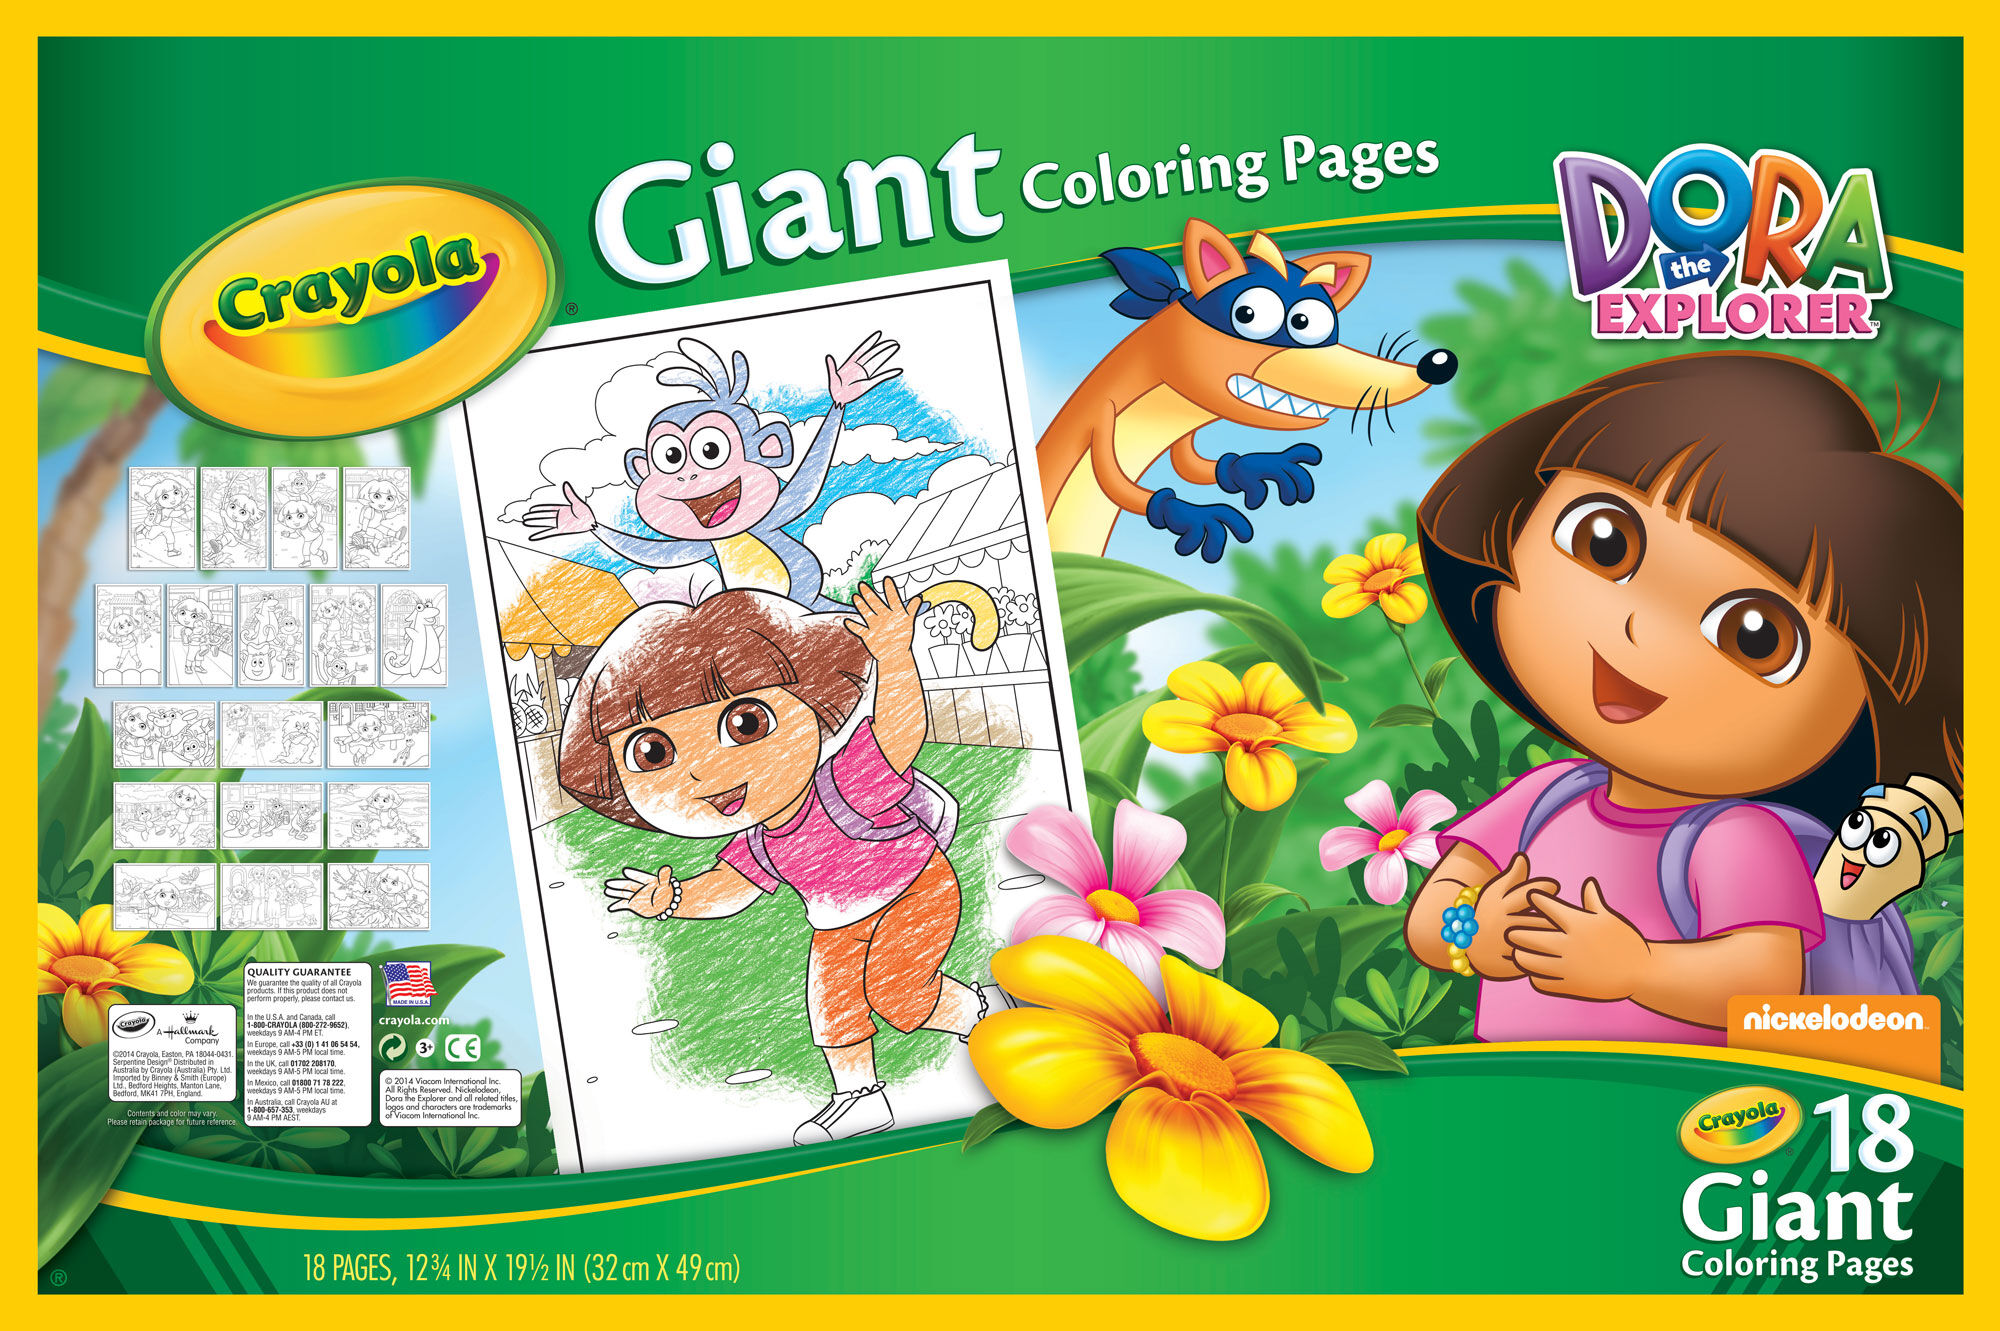 Giant Coloring Pages - Dora The Explorer Crayola